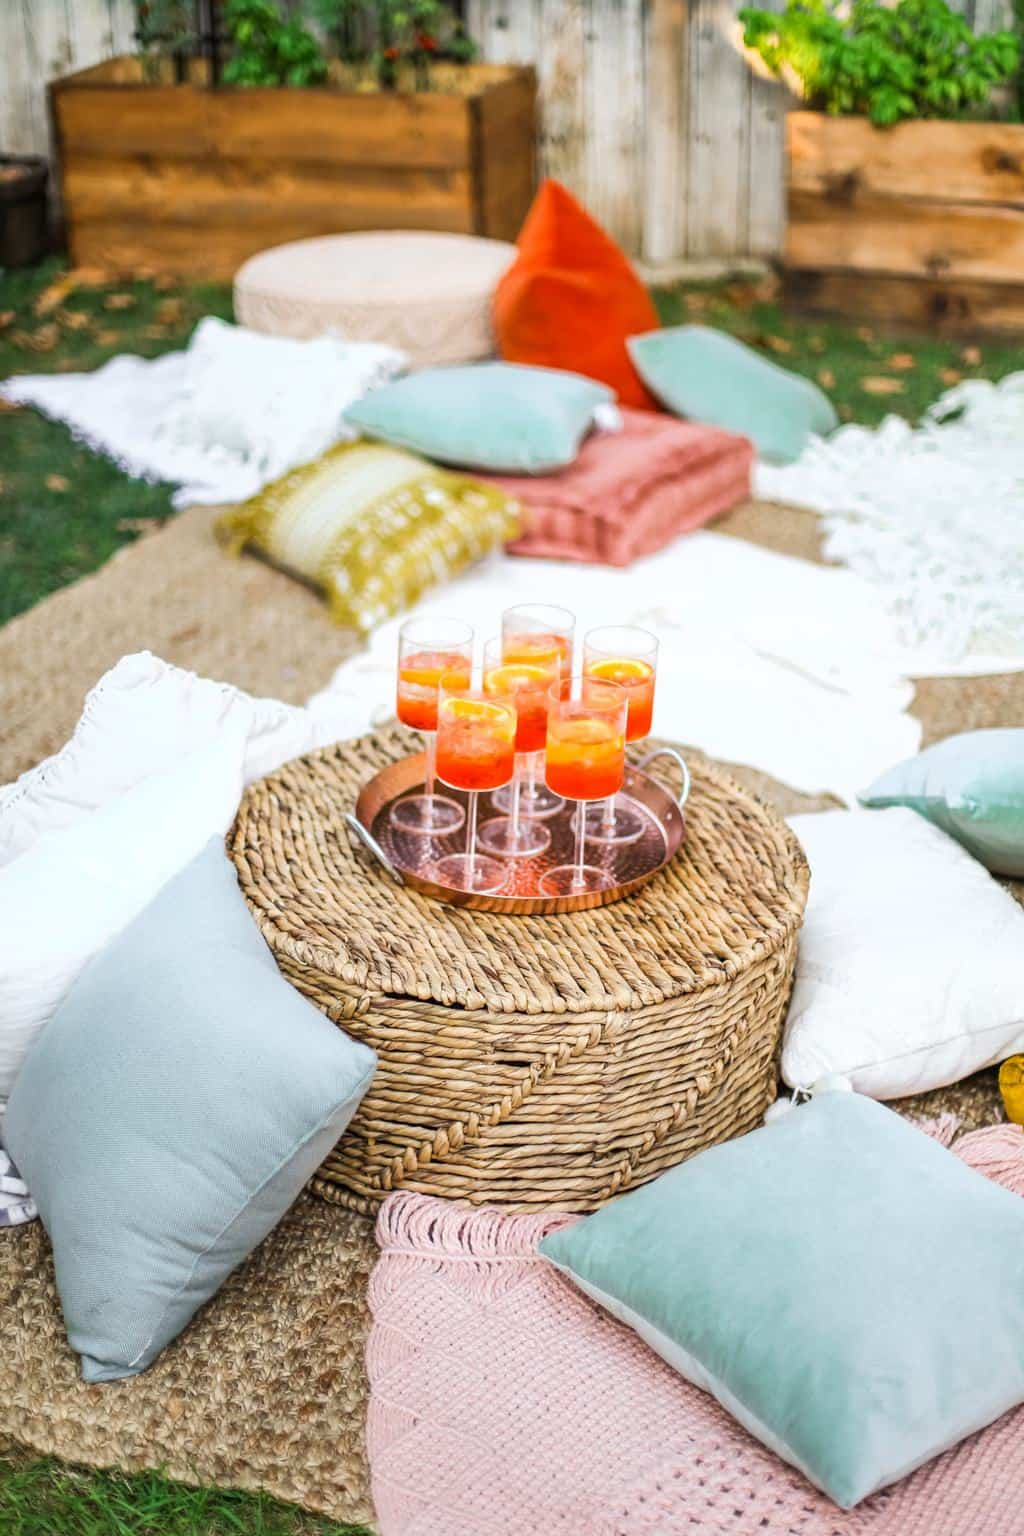 A cozy lounge area with a tray of aperol spritz's for a movie night.